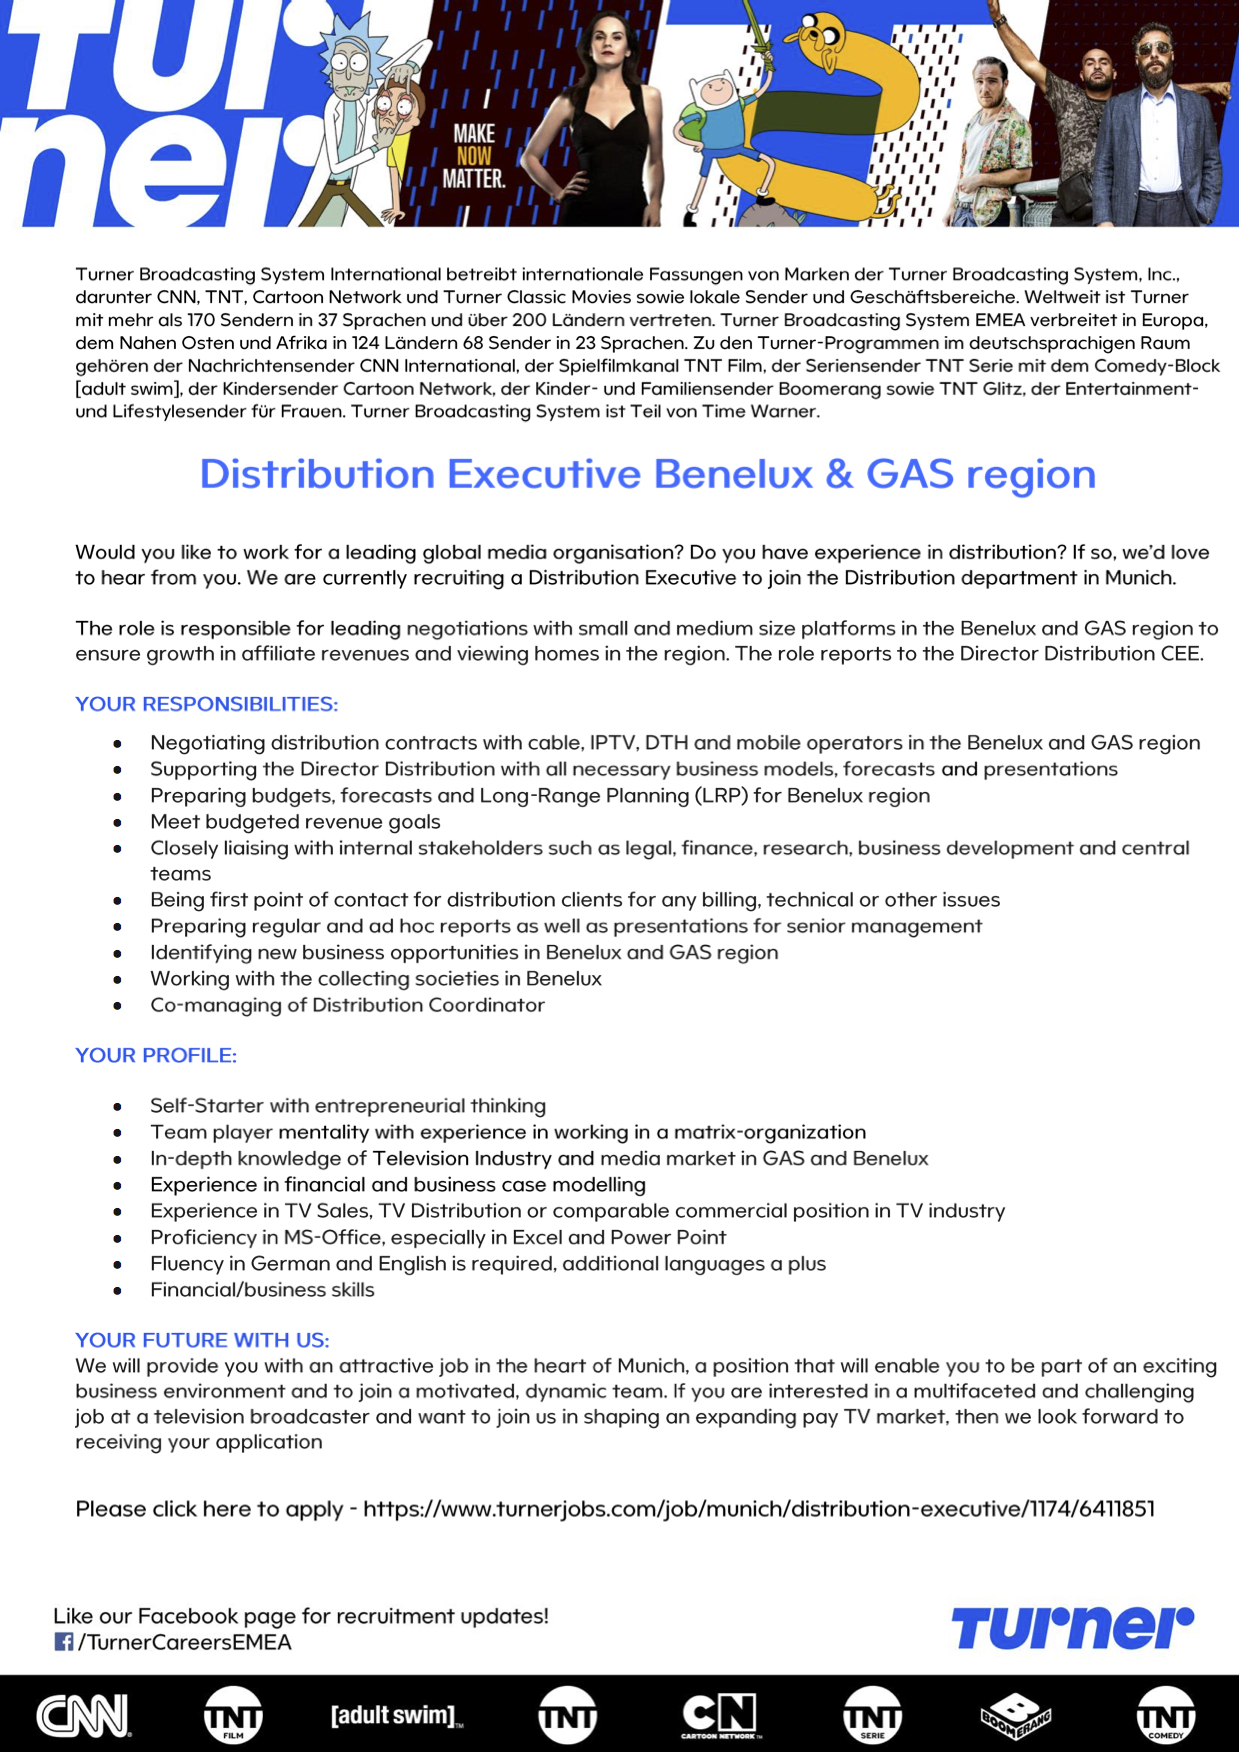 Distribution Executive Benelux & GAS region